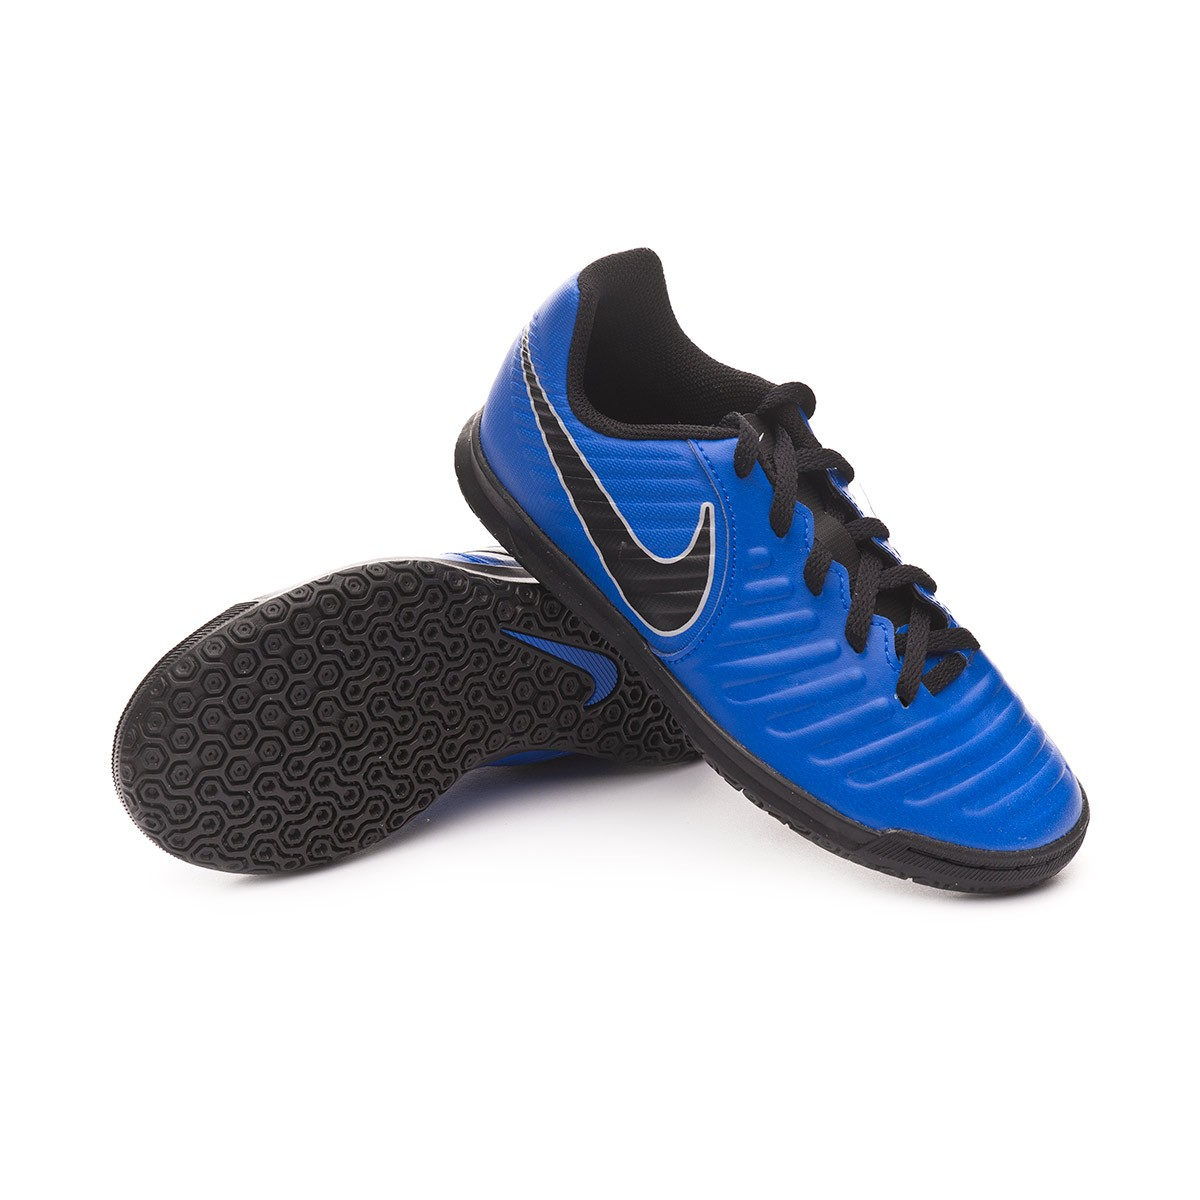 wholesale dealer 7b1a2 879e9 Futsal Boot Nike Kids Tiempo LegendX VII Club IC Racer blue-Black-Wolf grey  - Tienda de fútbol Fútbol Emotion